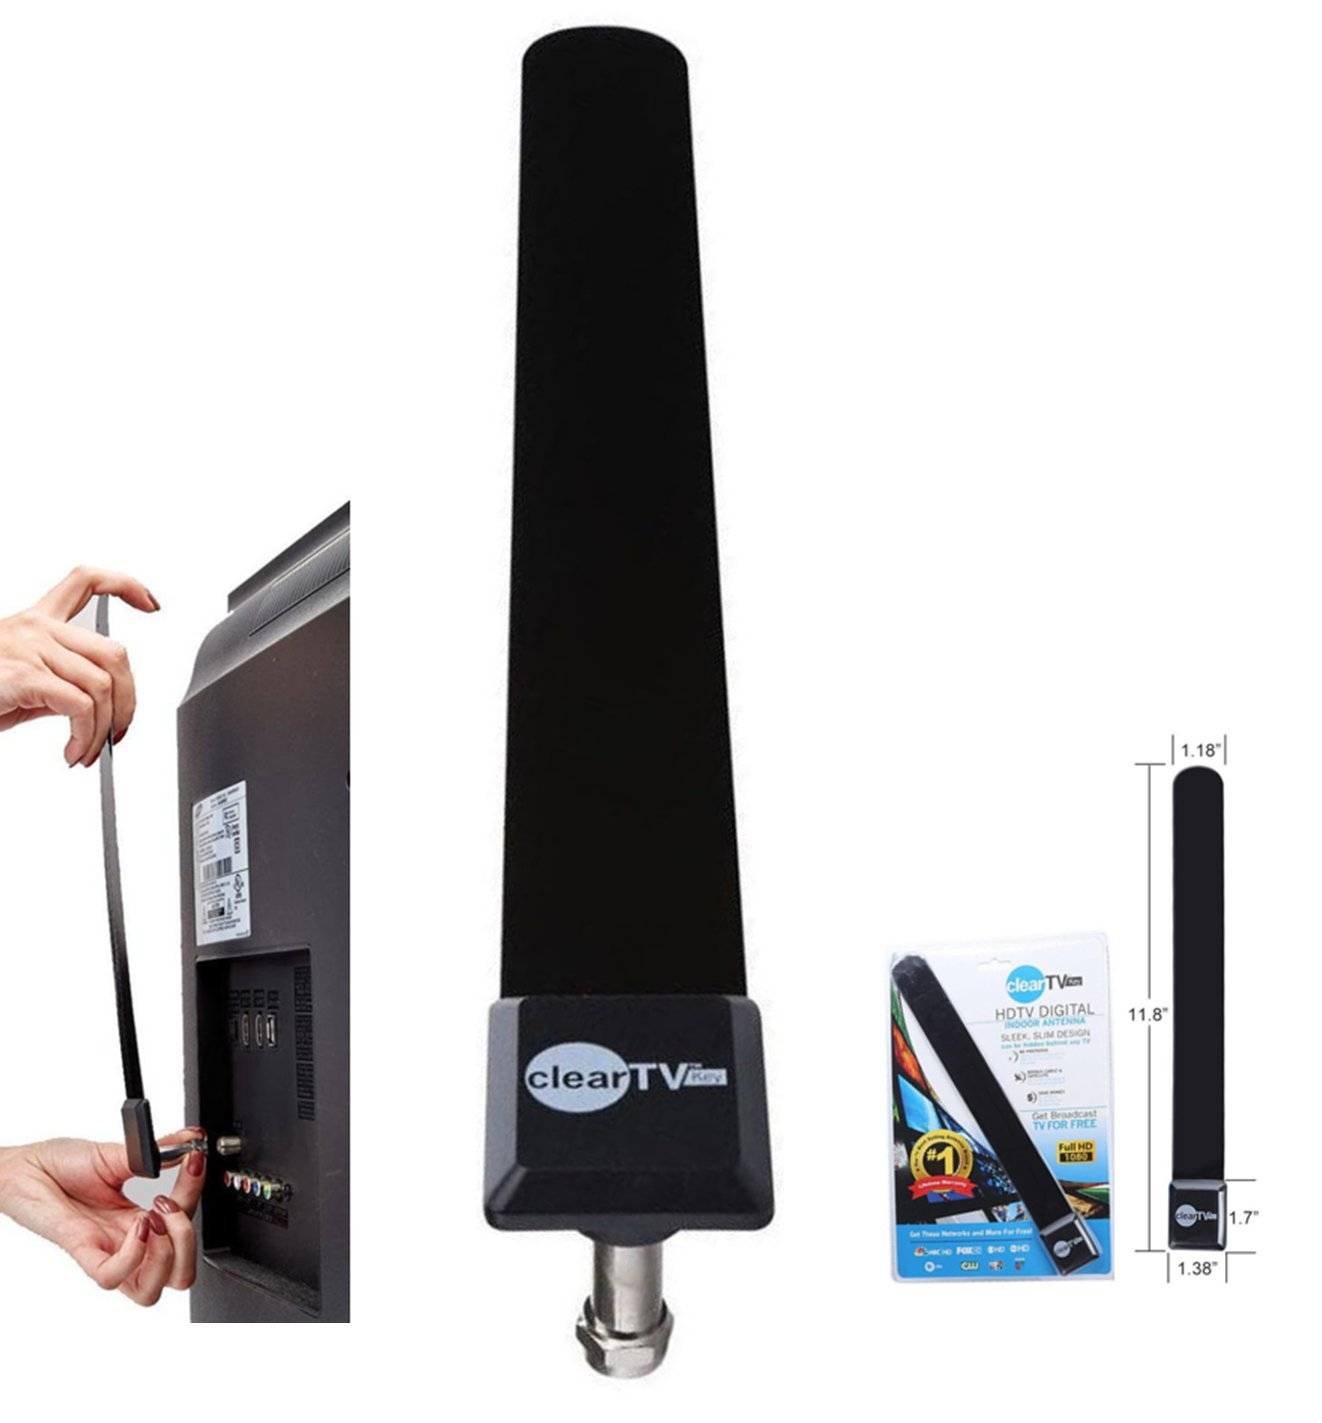 Clear TV Key Digital Indoor Antenna Stick – Pickup More Channels with HDTV Signal Receiver Antena Booster (Number & Quality of Channel Pickup Depends on Living Area)- Full 1080p HD - Easy Installation